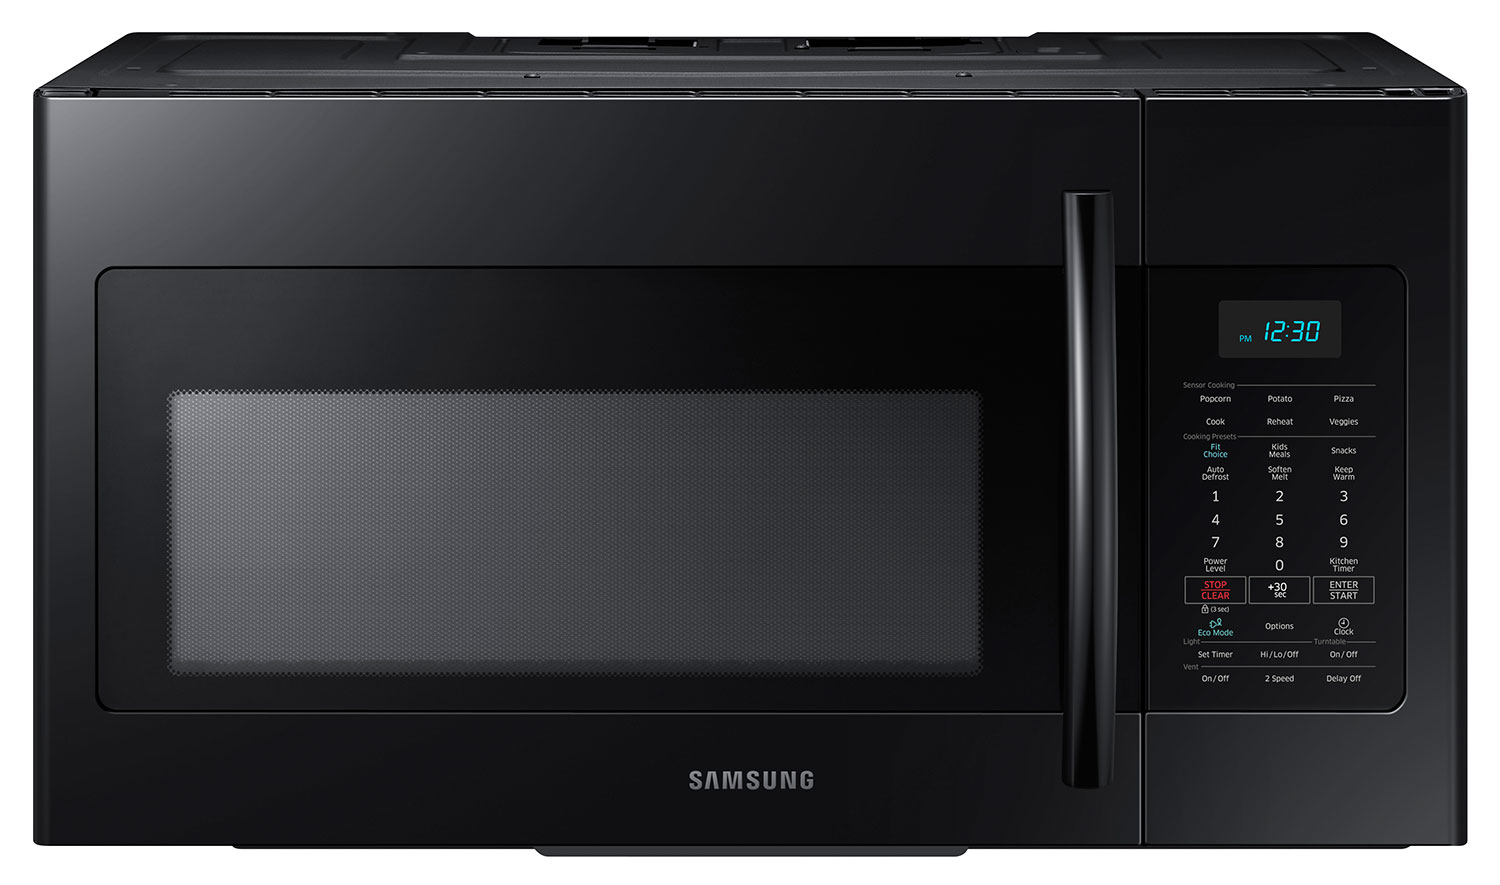 Cooking Products - Samsung 1.7 Cu. Ft. Over-the-Range Microwave – Black